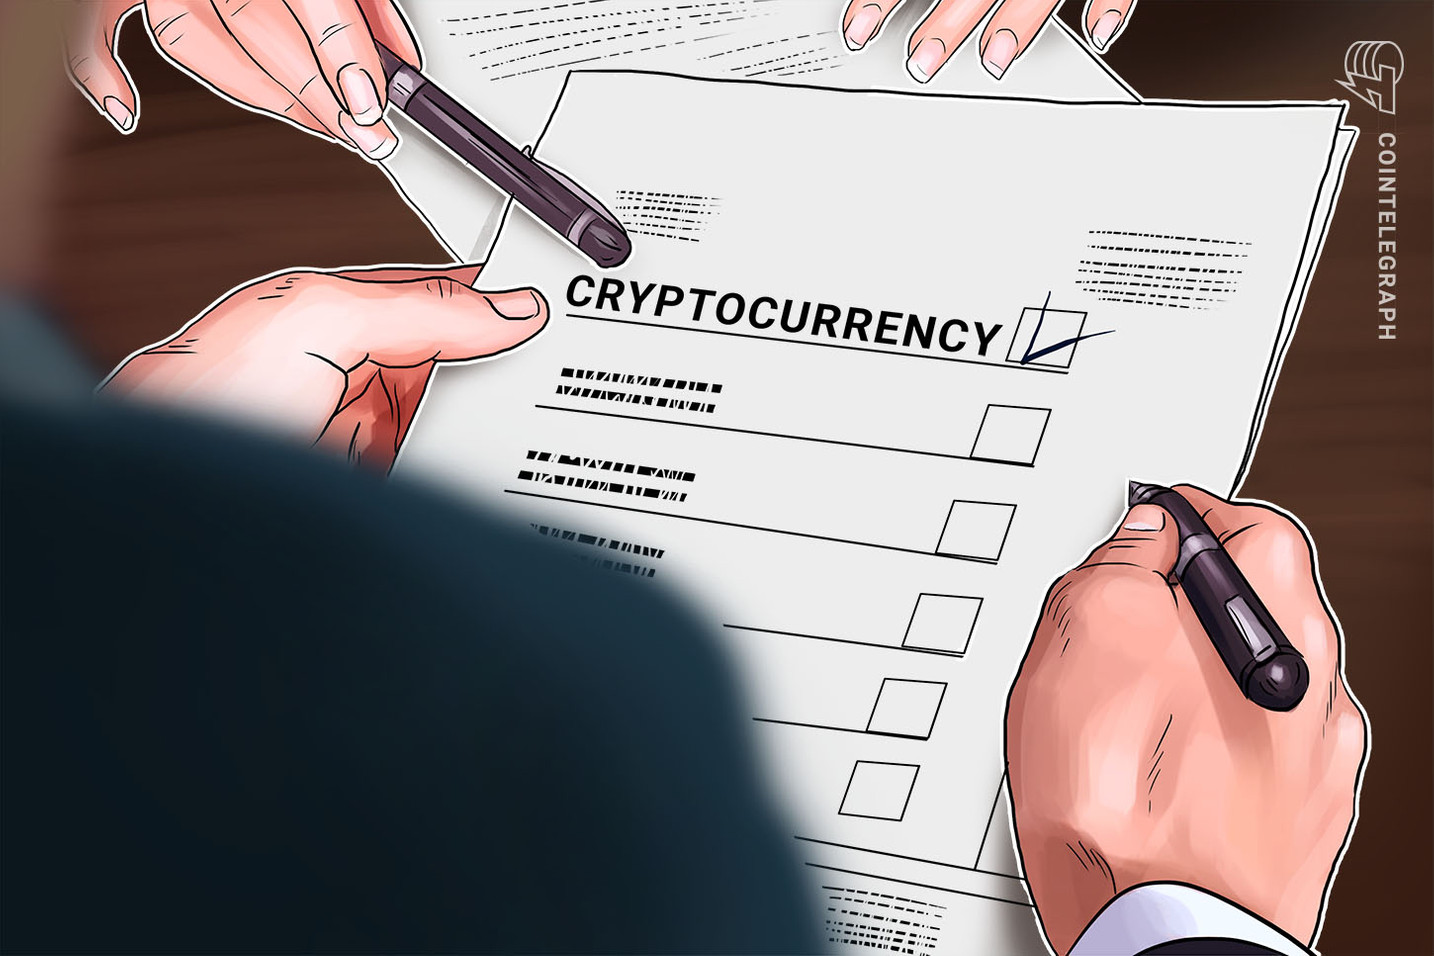 Ukraine's Officials Will Need to Report Crypto as 'Intangible Assets'